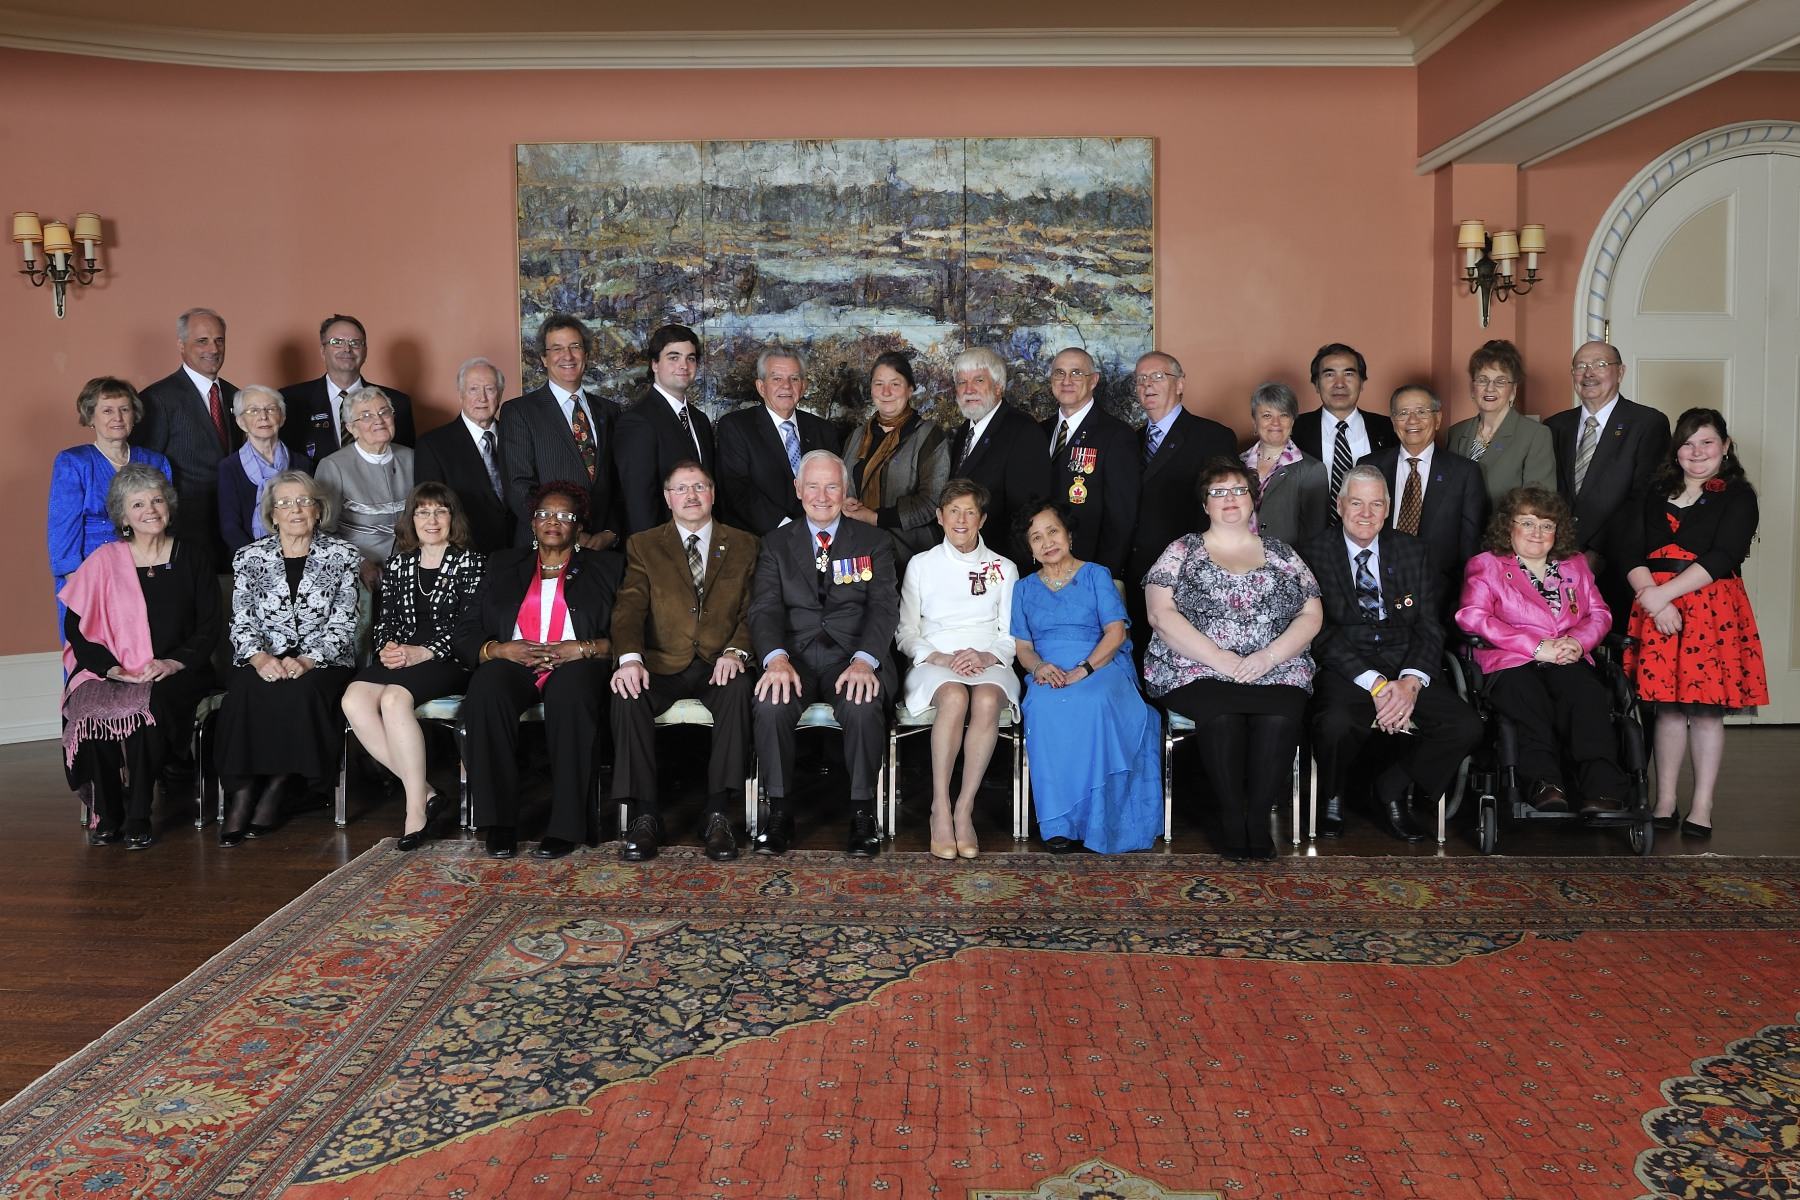 Their Excellencies are pictured with the 28 recipients of the Governor General's Caring Canadian Award, on April 17, 2012.